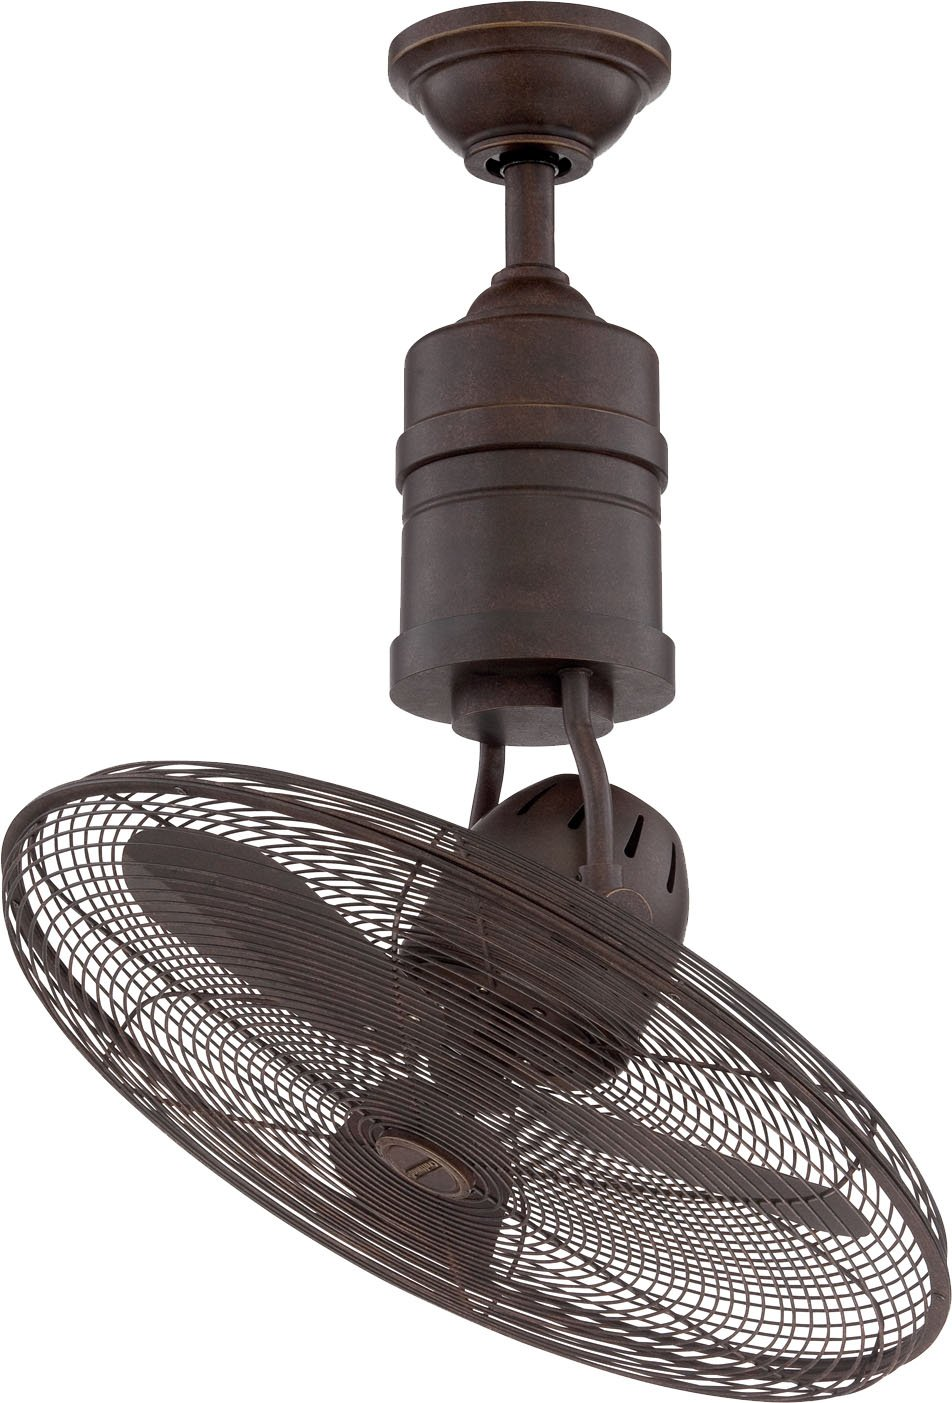 Craftmade BW321AG3 Bellows III - 18-Inch Rotating Cage Ceiling Fan, Aged Bronze Finish